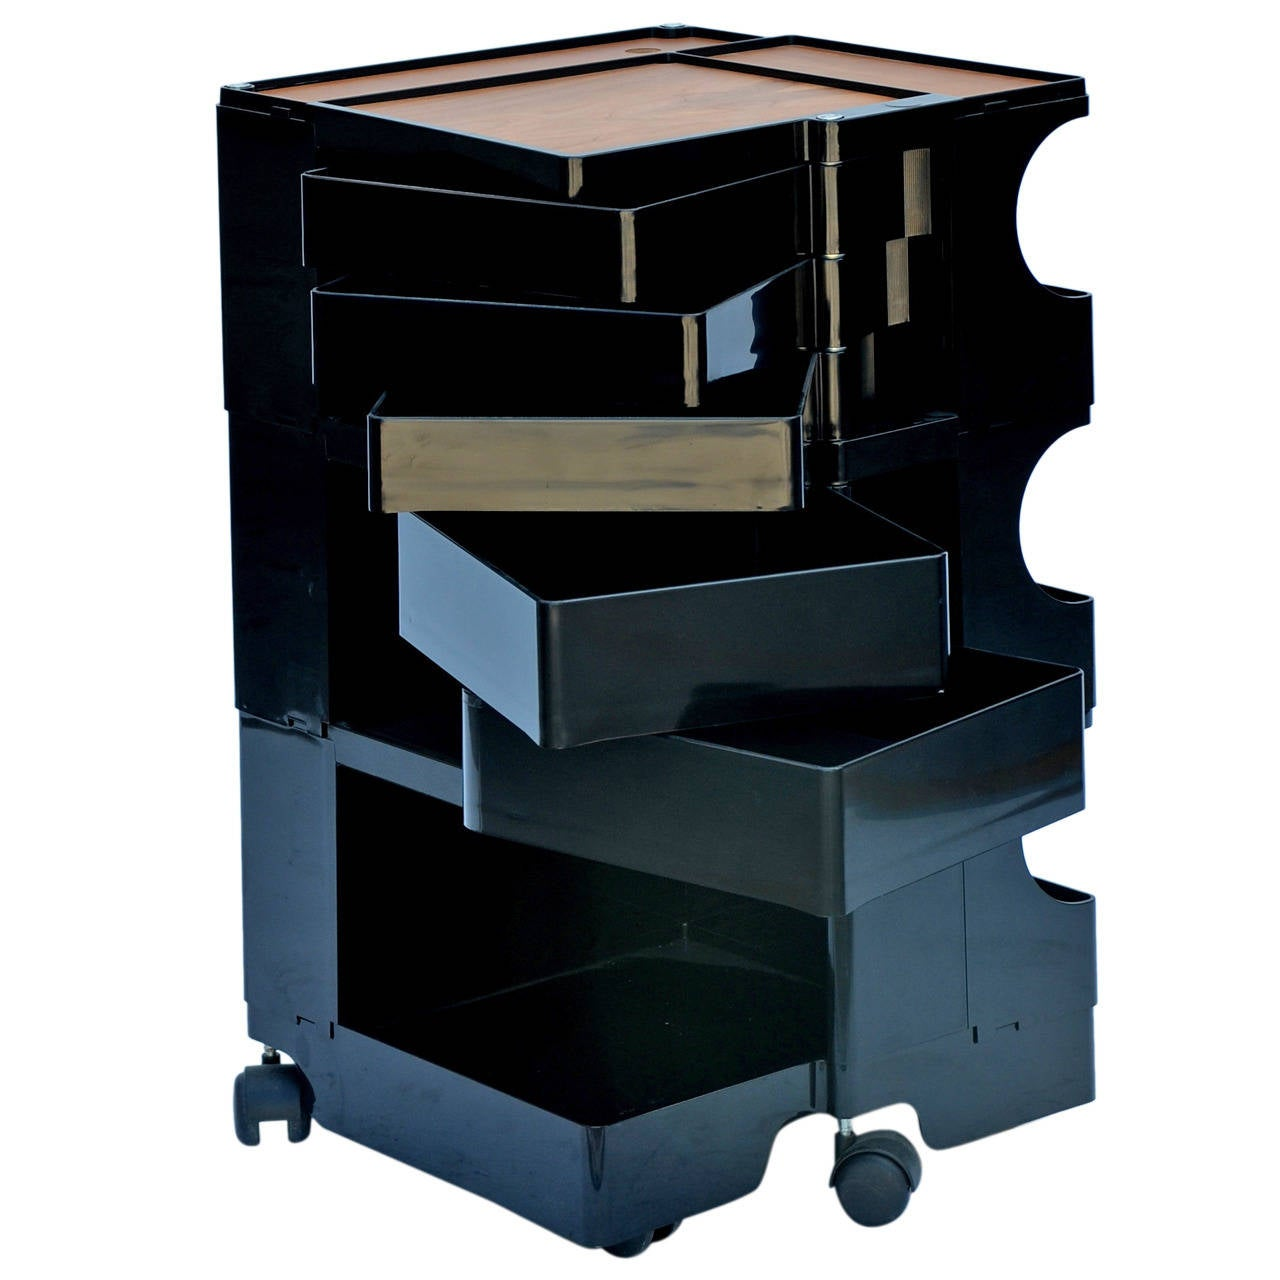 Black boby storage cart by joe colombo with artist easels for Joe colombo boby